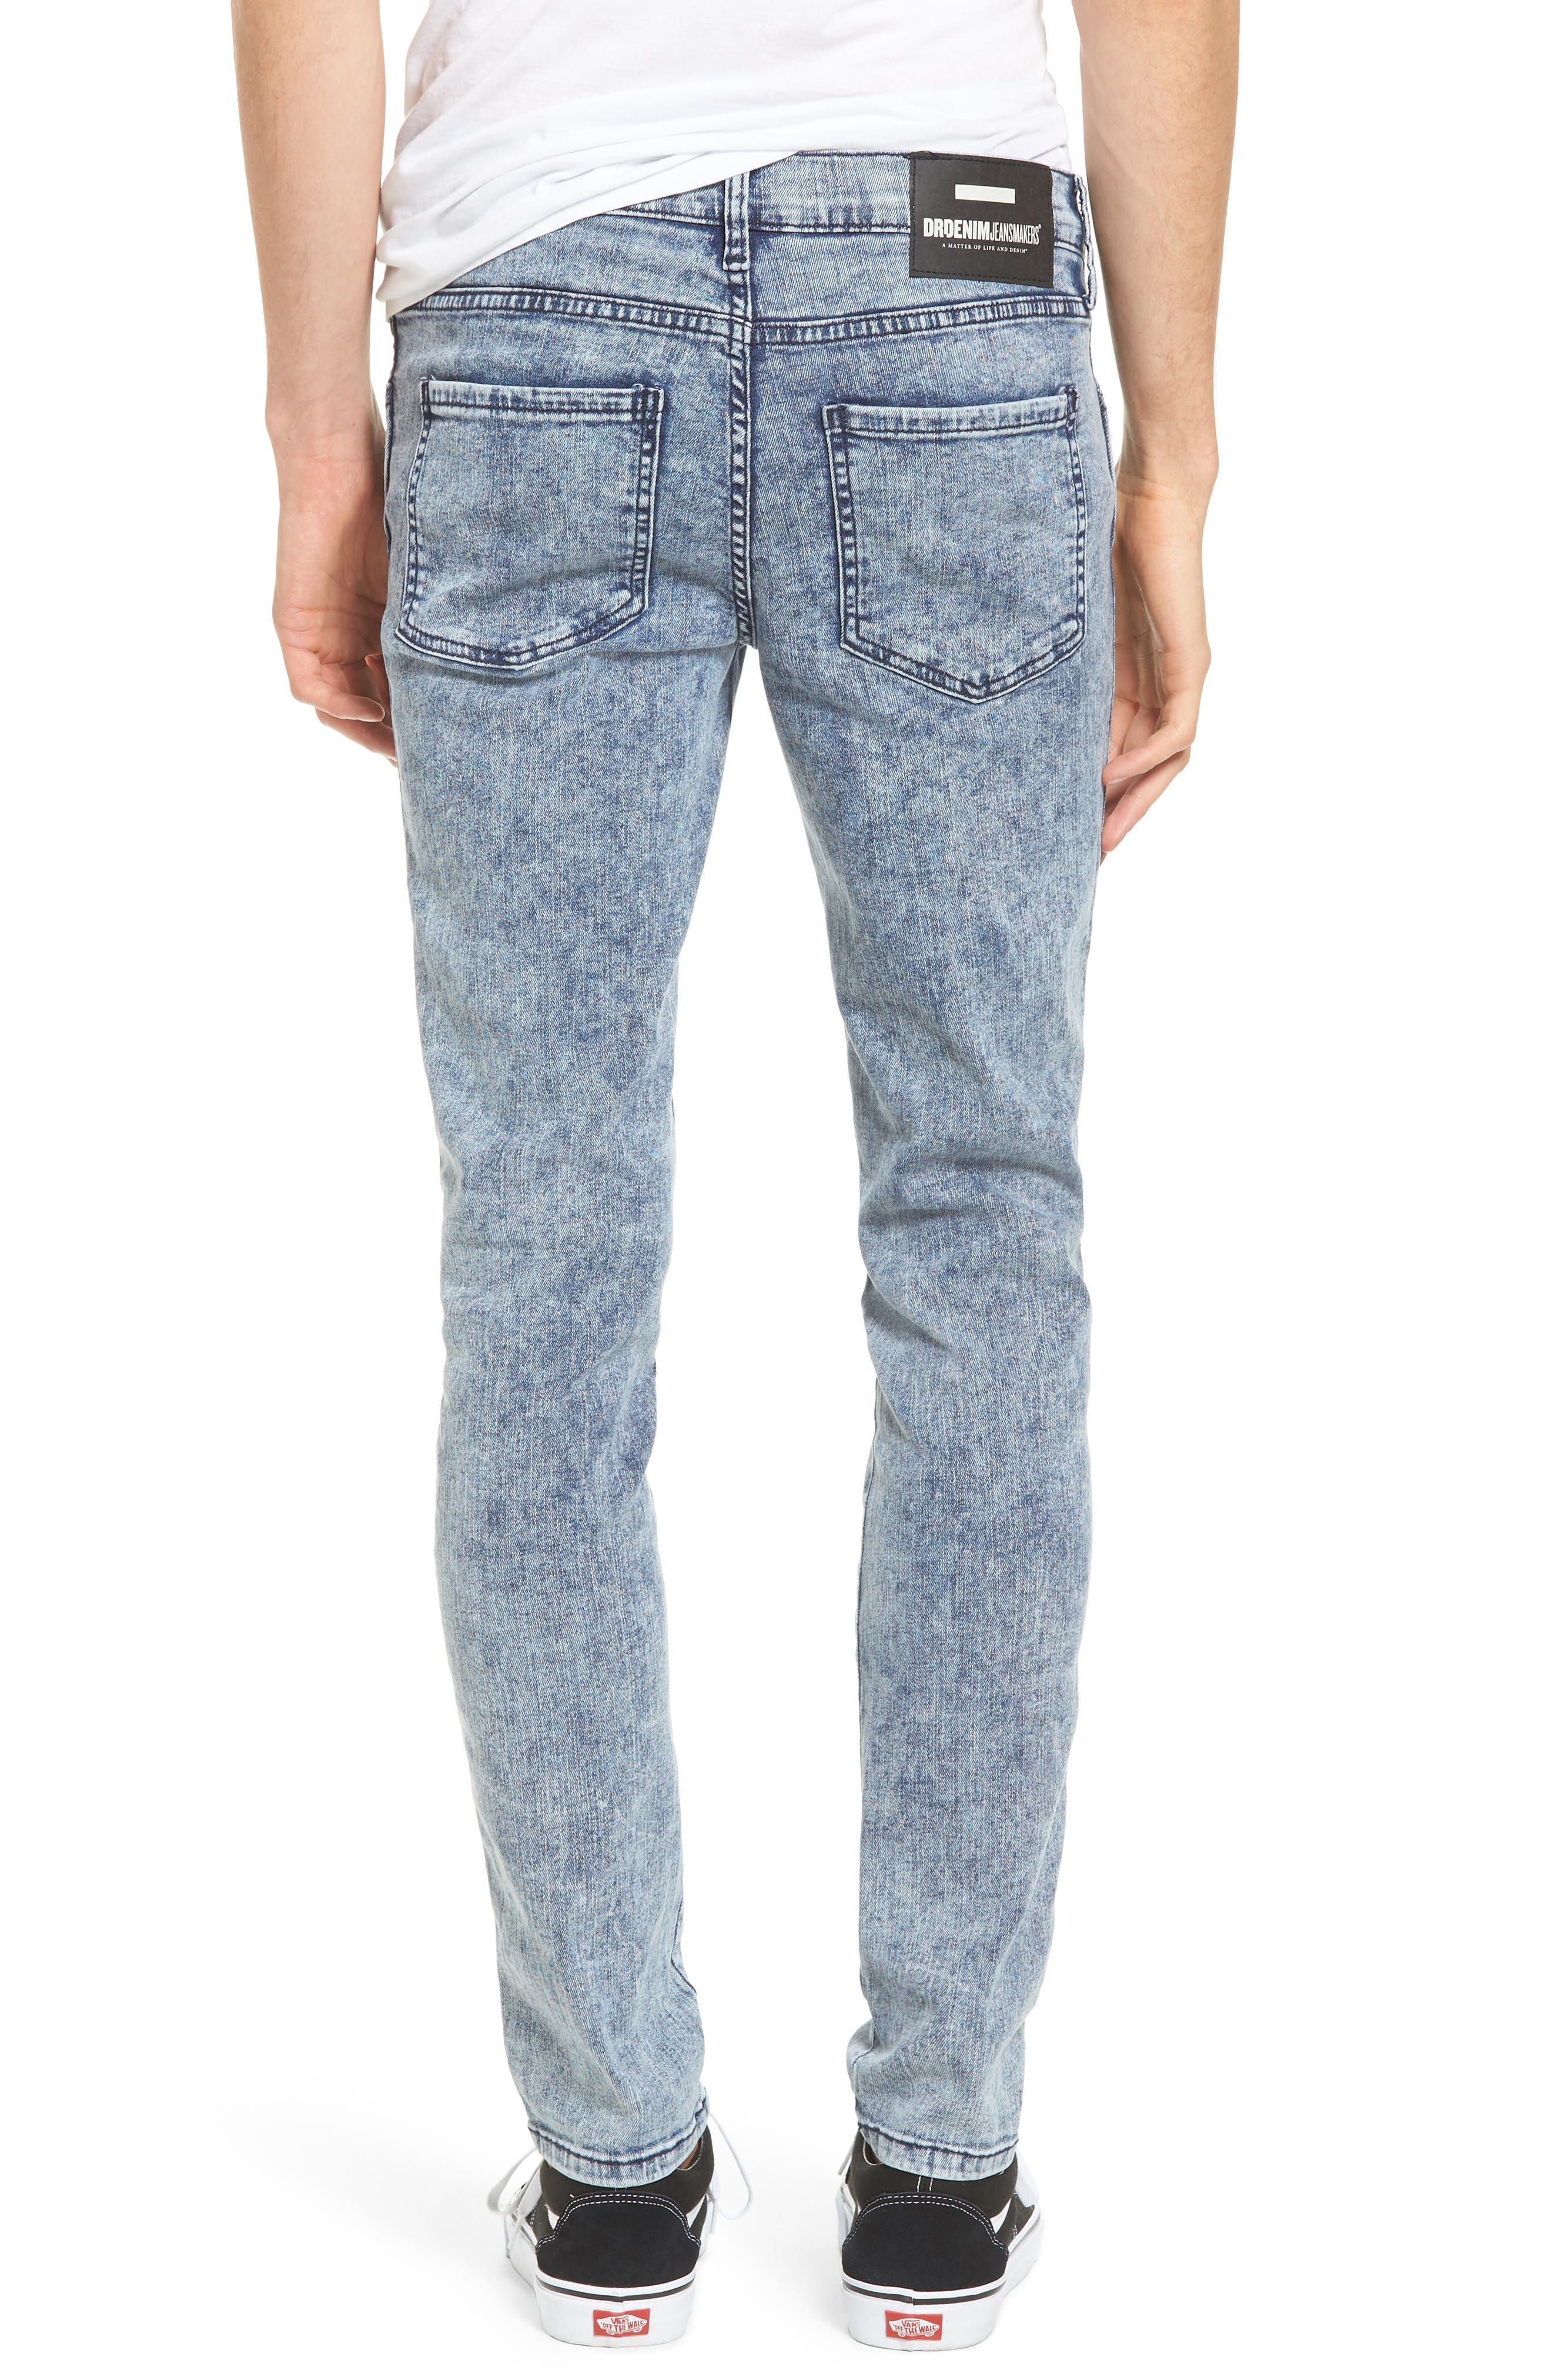 Snap Skinny Fit Jeans,                             Alternate thumbnail 2, color,                             400